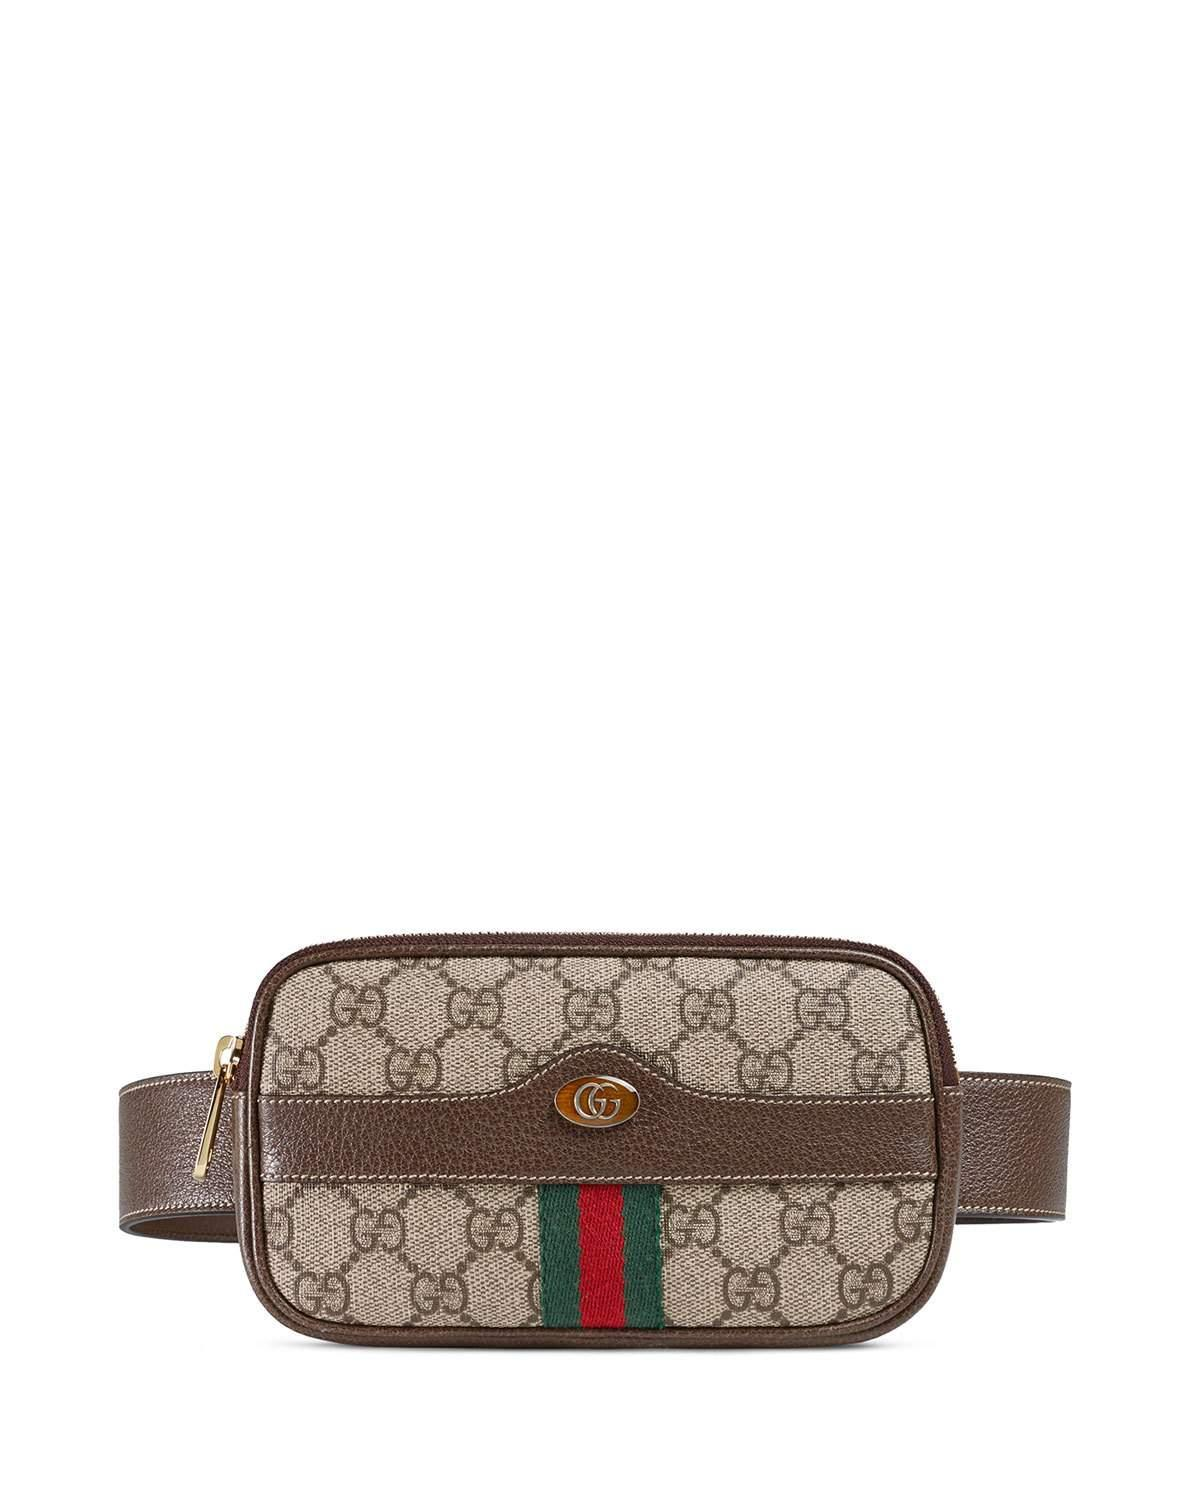 33201256ca9 Lyst - Gucci Ophidia GG Supreme Canvas Belt Bag in Natural